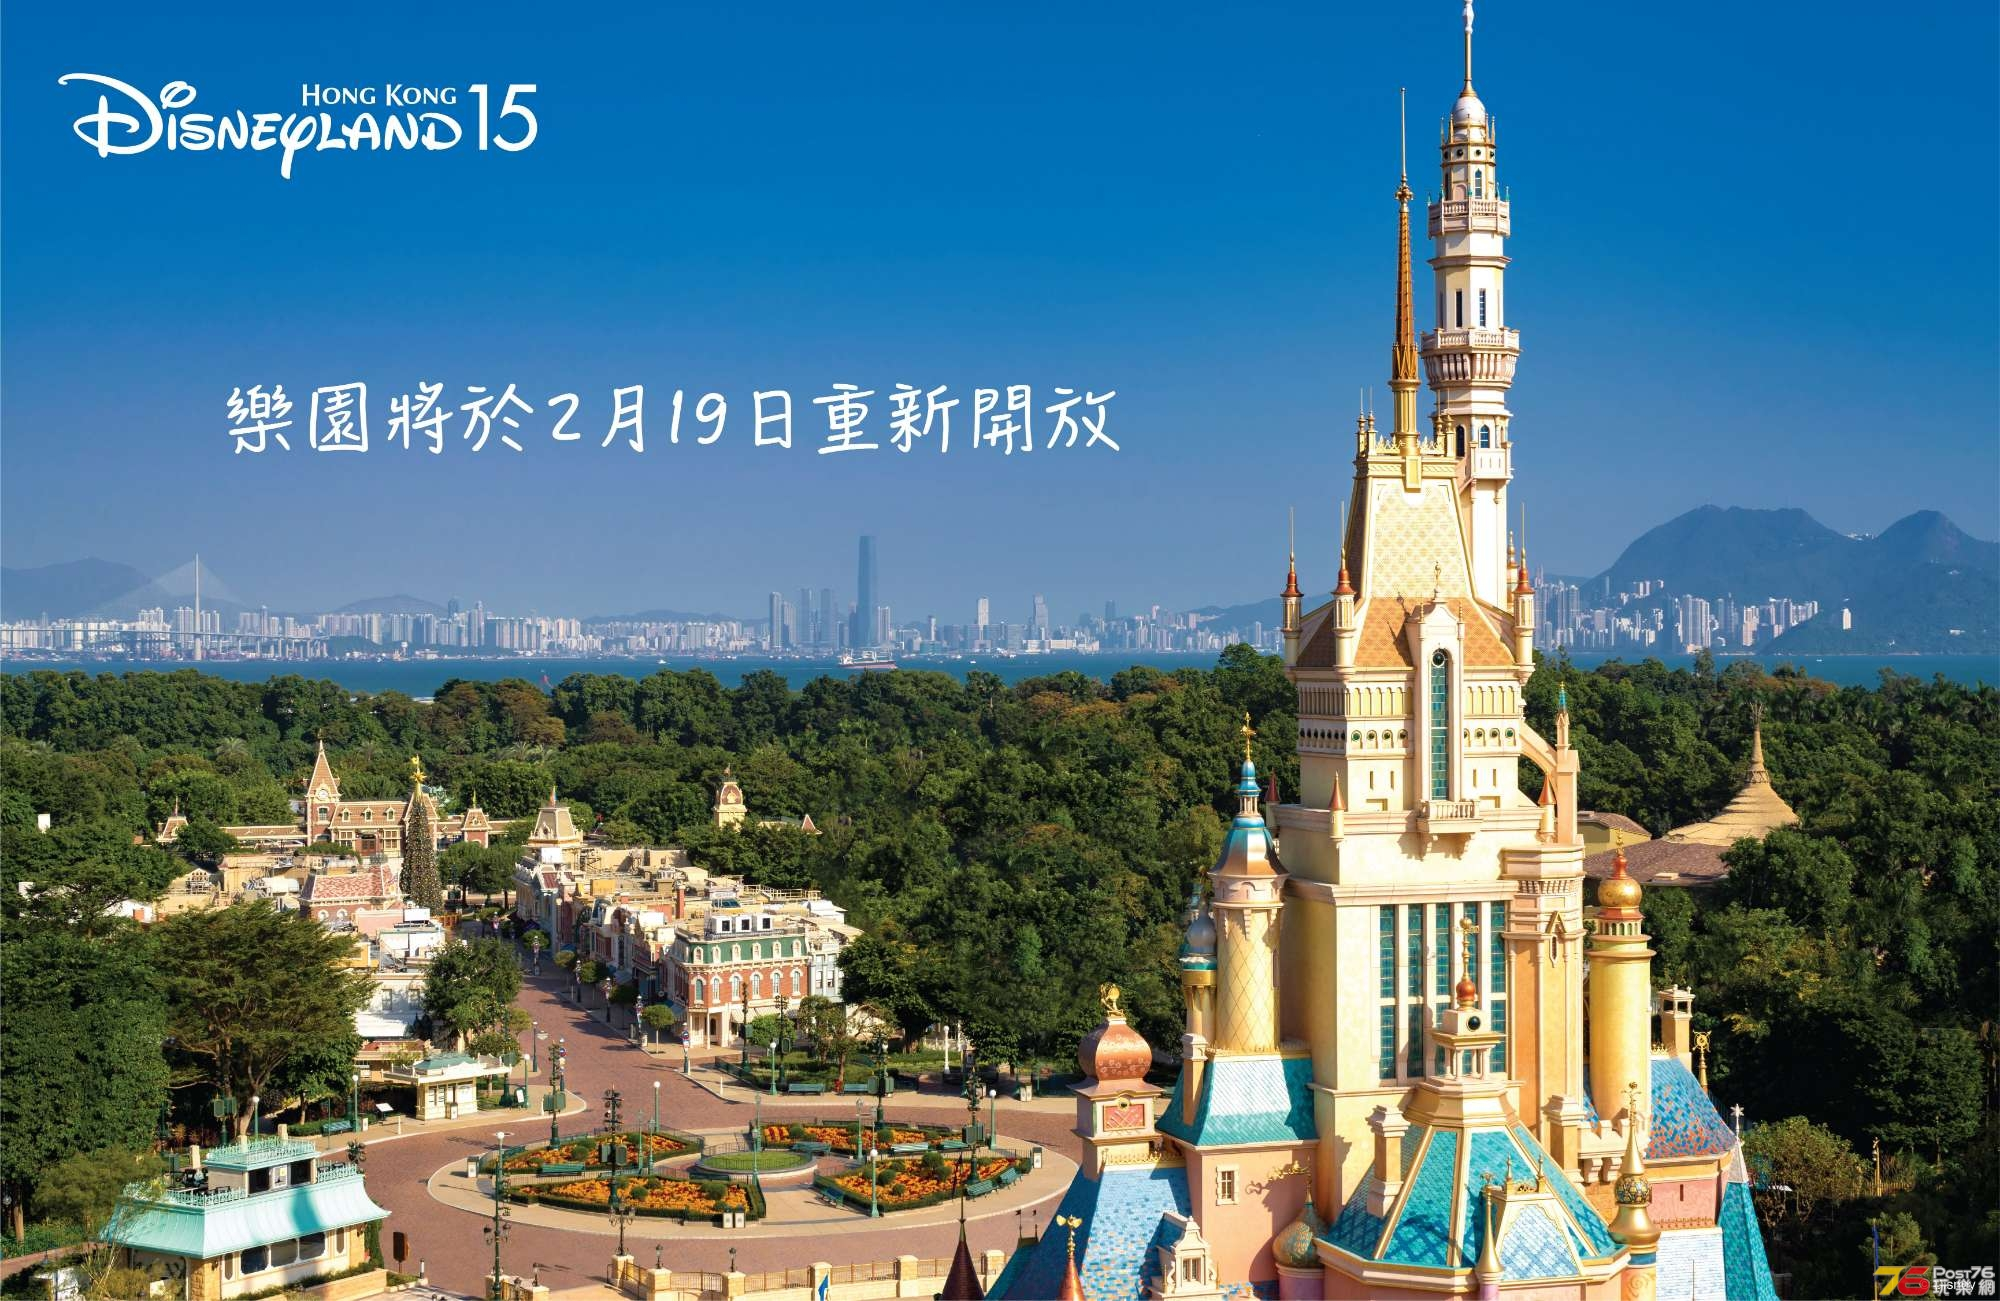 HKDL_Reopening_Key Image_TC.jpeg